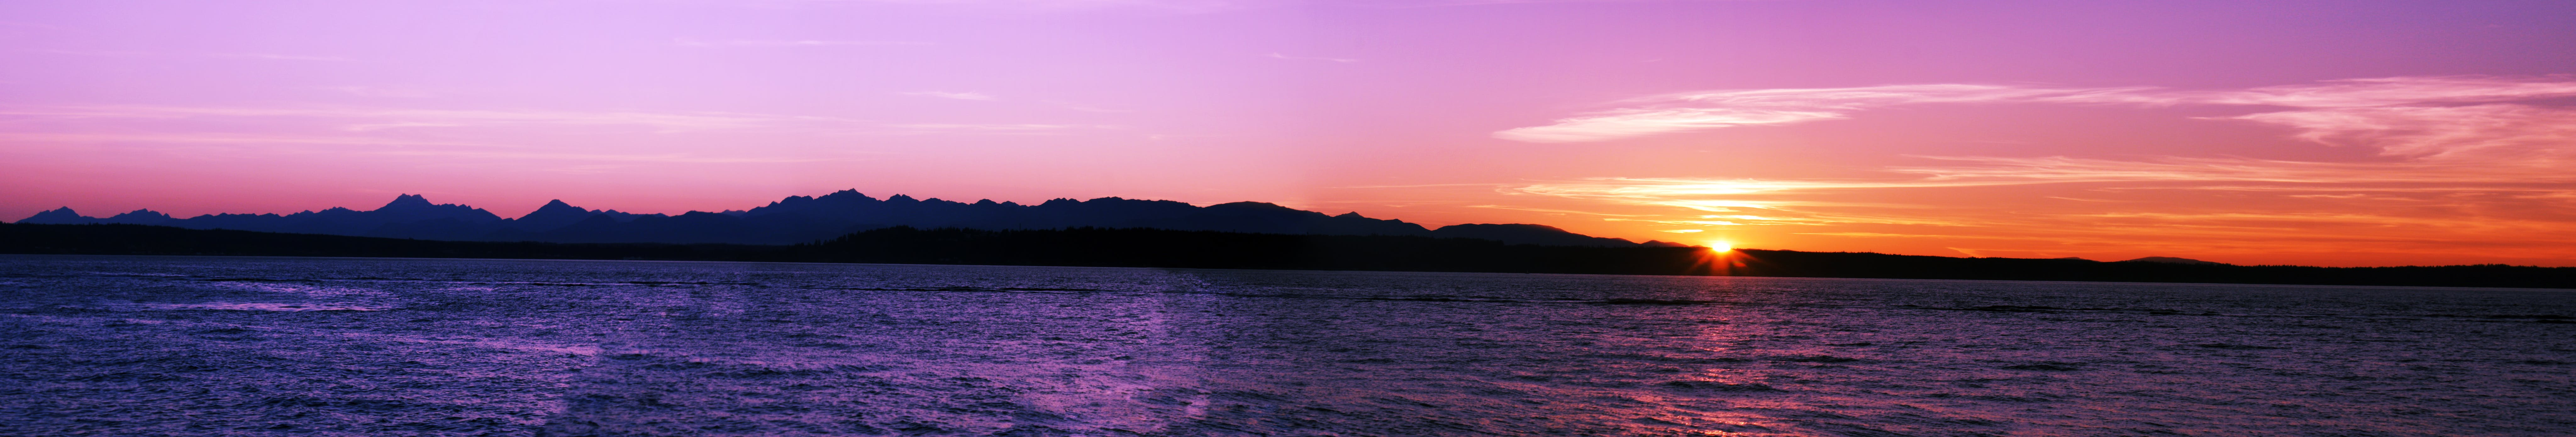 Panoramic Photography of Sea at Sunset